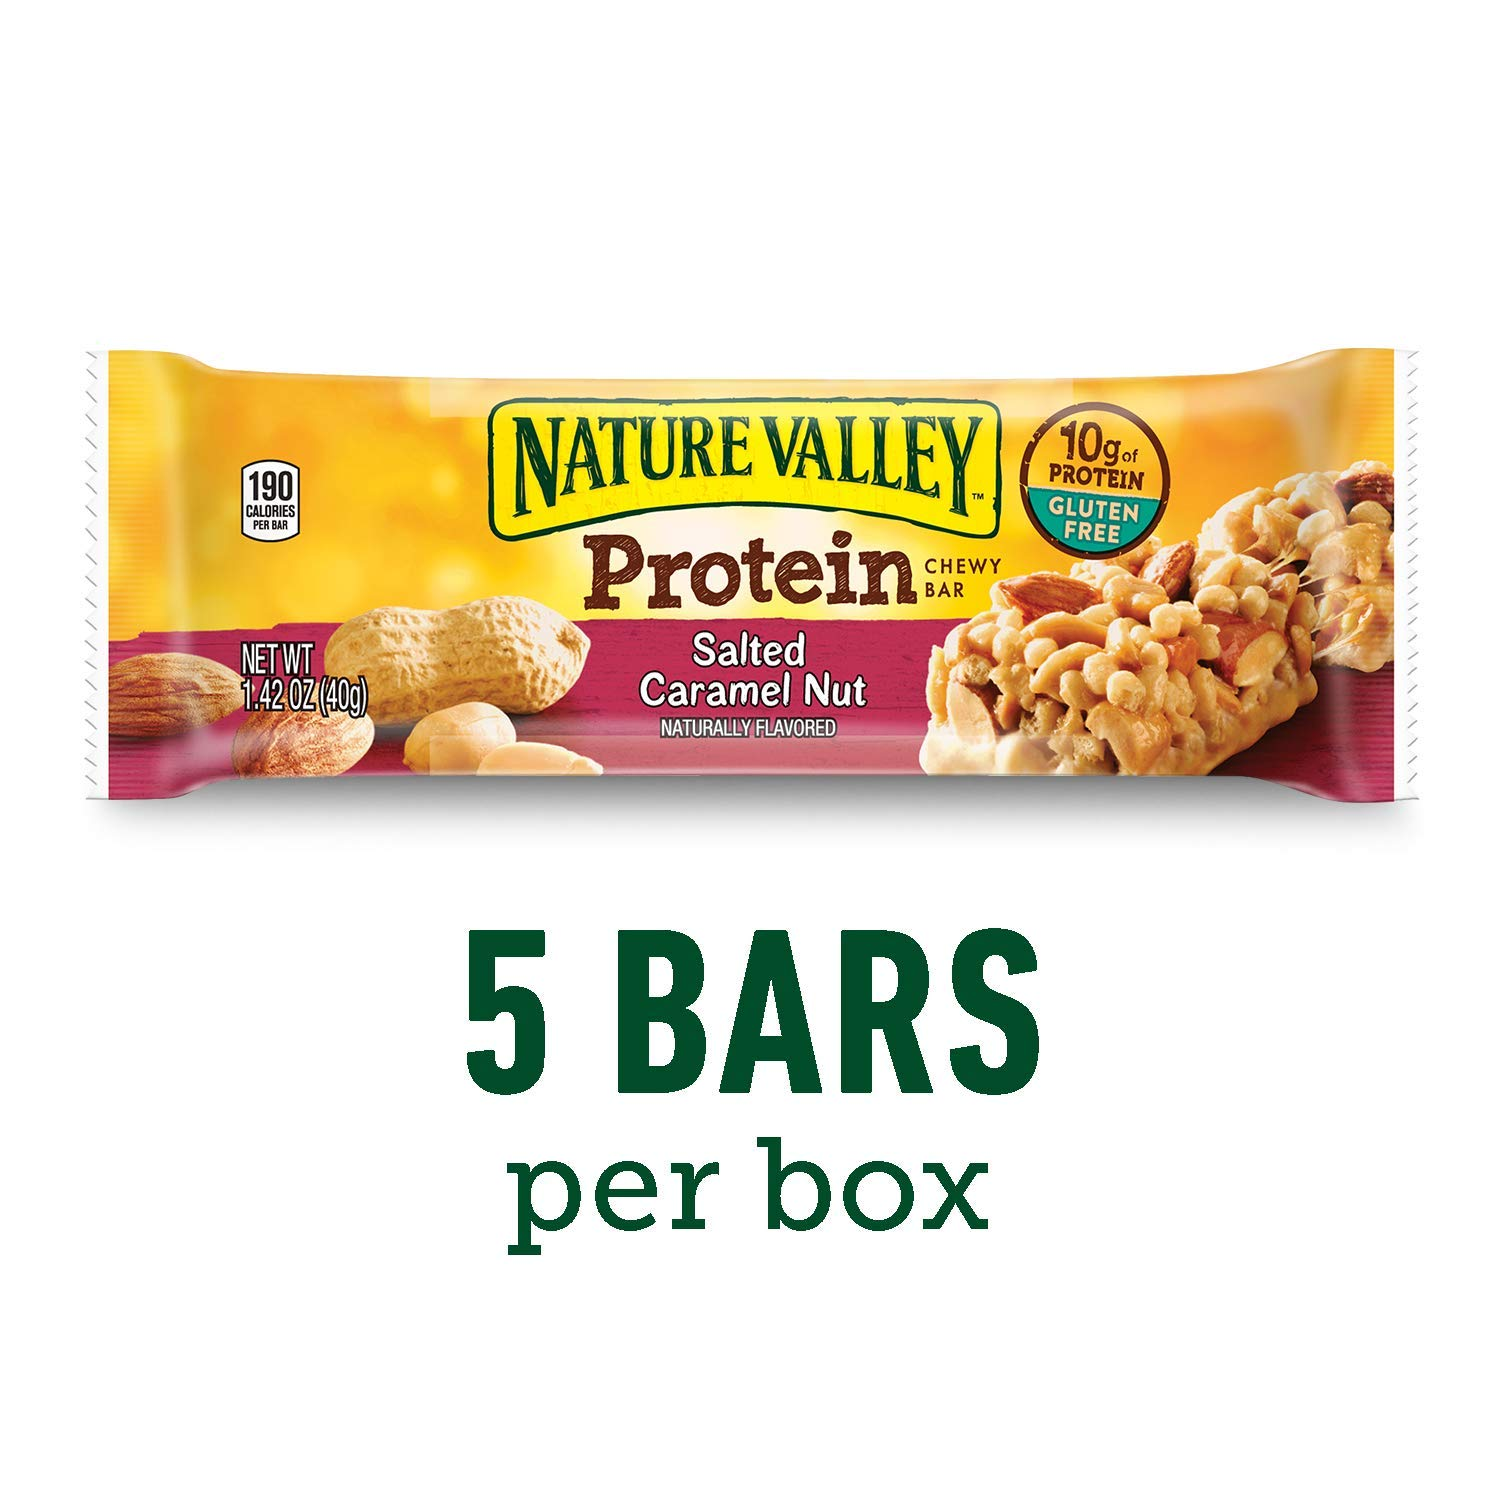 Nature Valley Protein Chewy Bars 5 bars